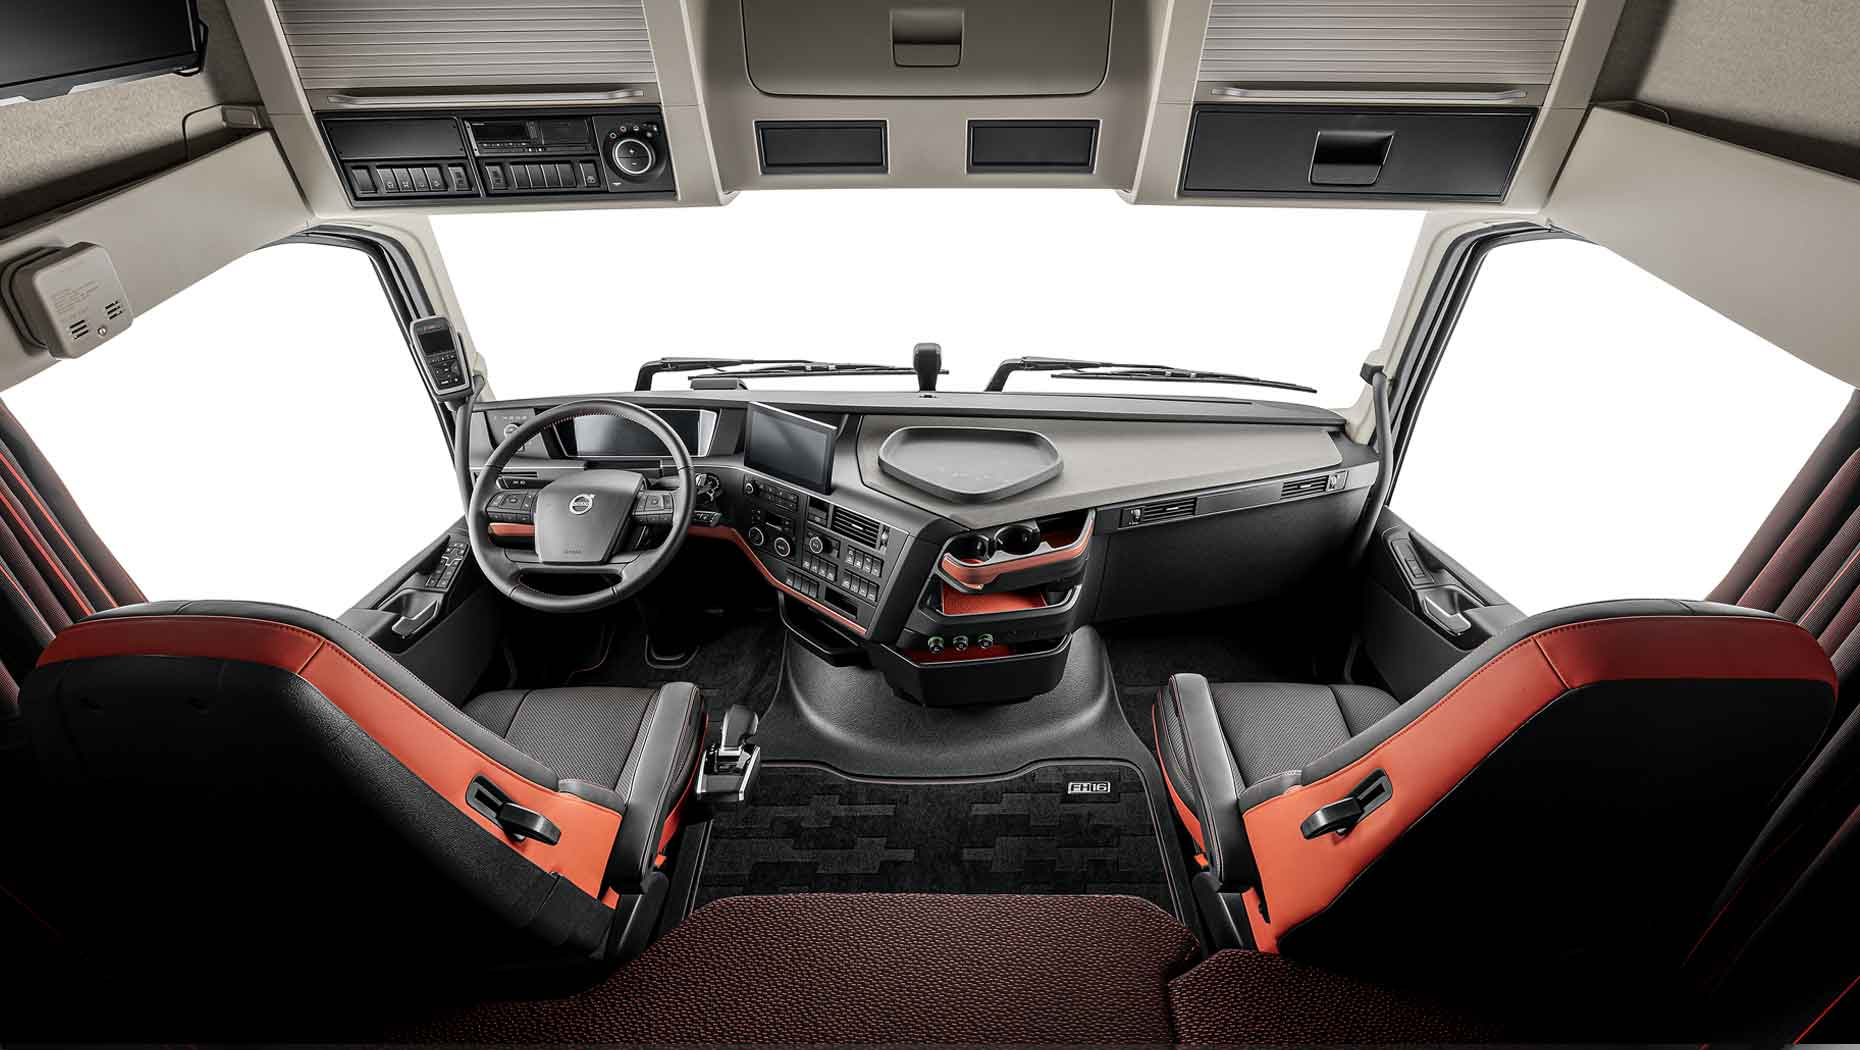 The updated cab interior of the Volvo FH and Volvo FH16